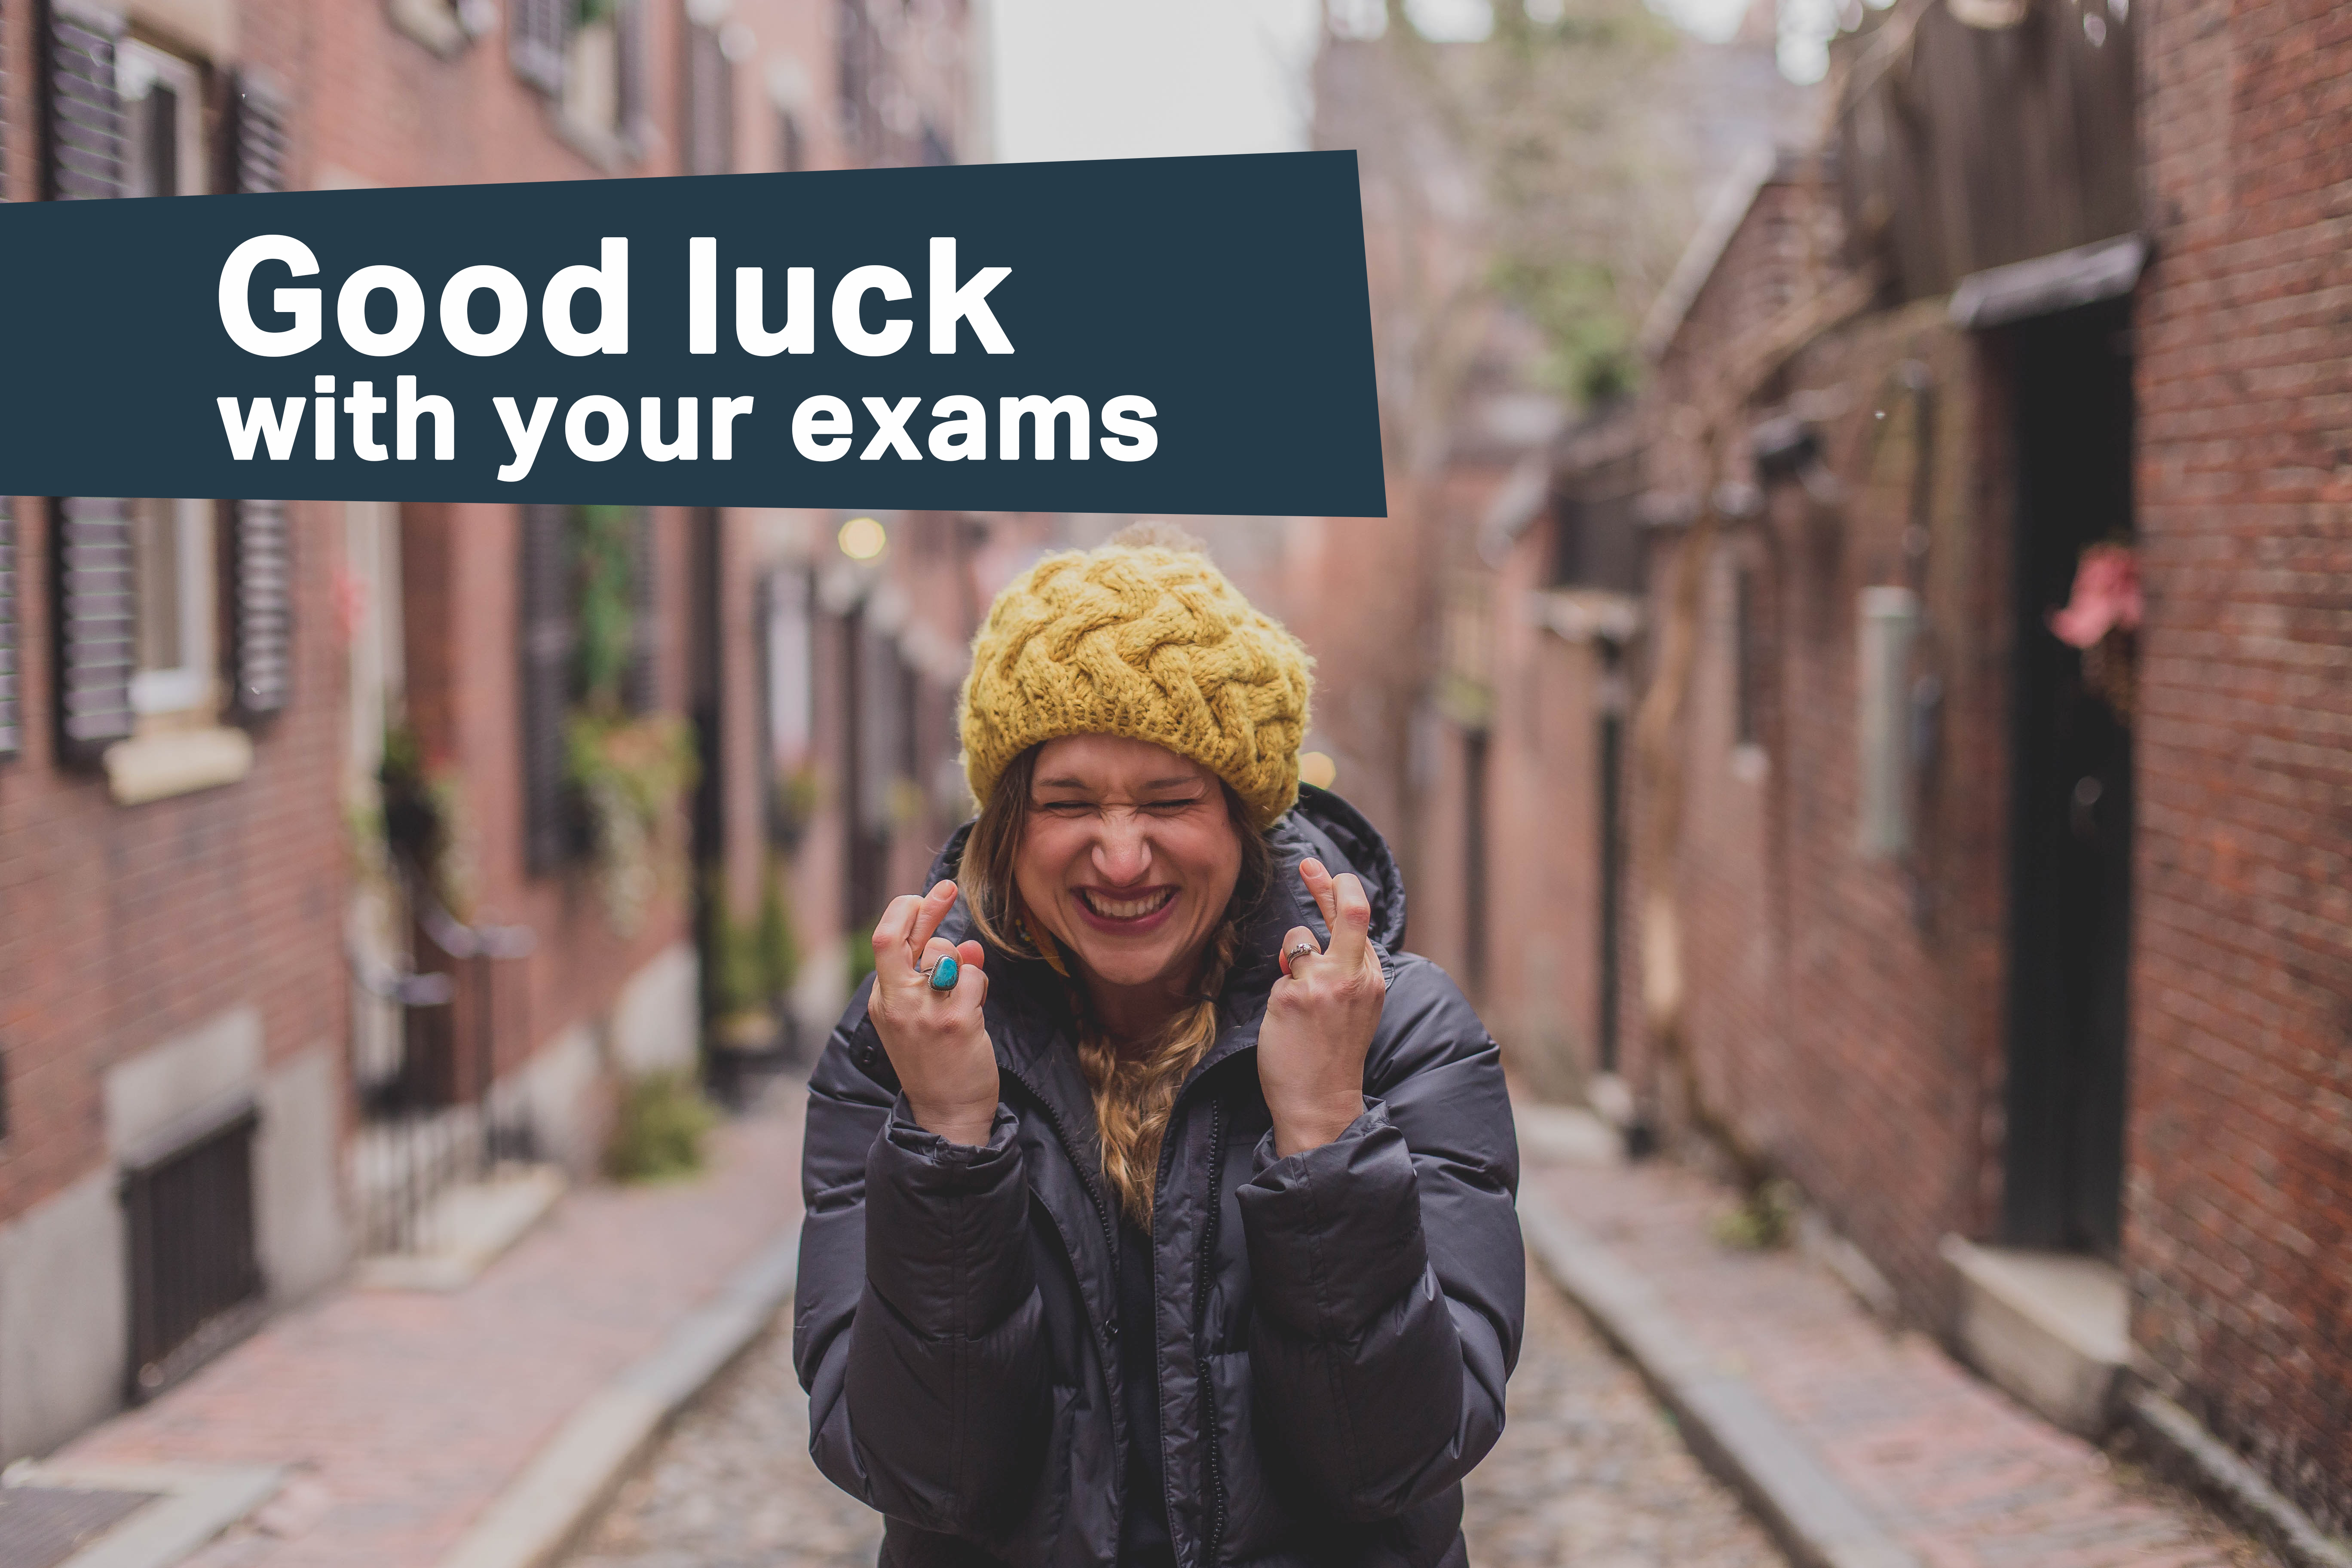 Good luck with your exams